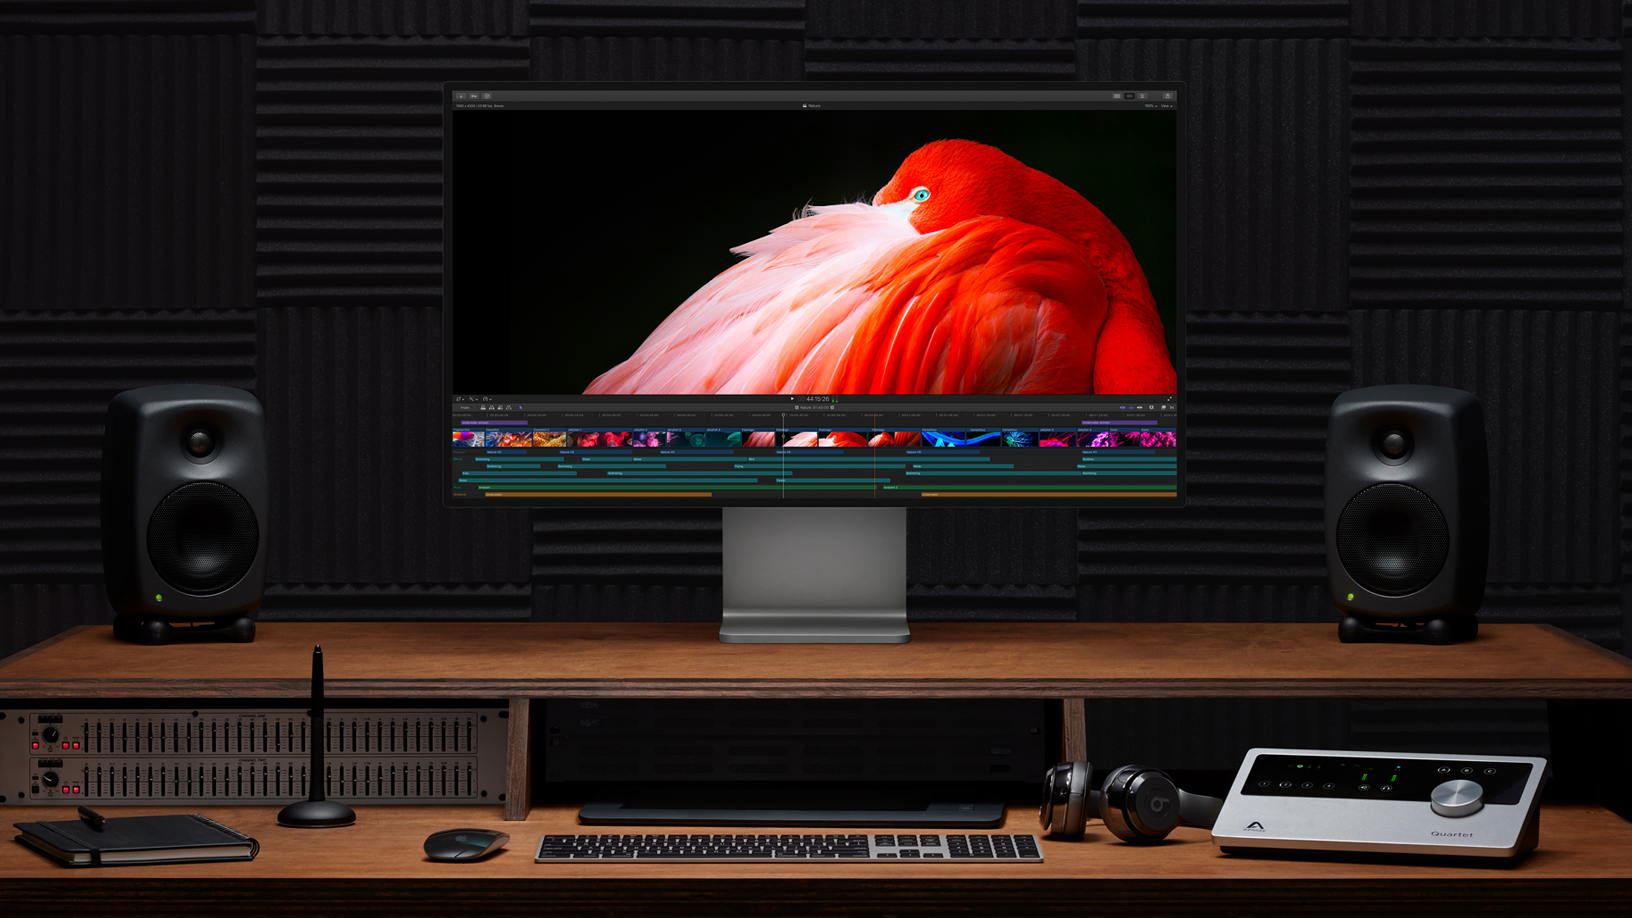 Apple_Mac-Pro-Display-Pro_Display-Pro-Workflow_060319.jpg